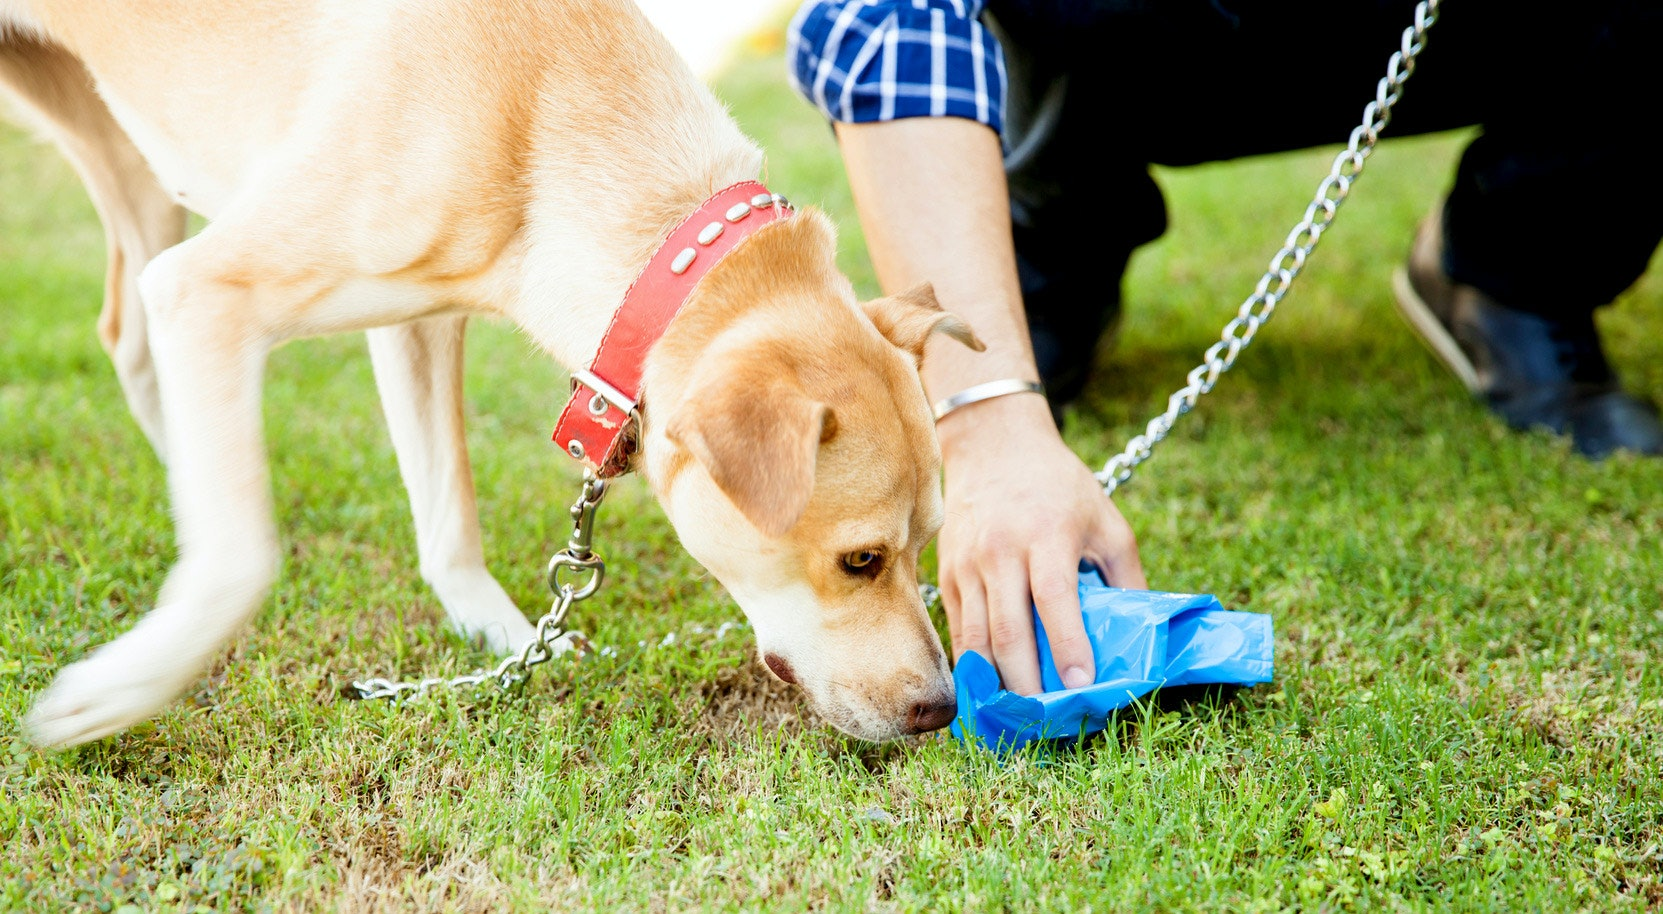 3ad7314d01d2 The 5 Best Biodegradable Dog Poop Bags